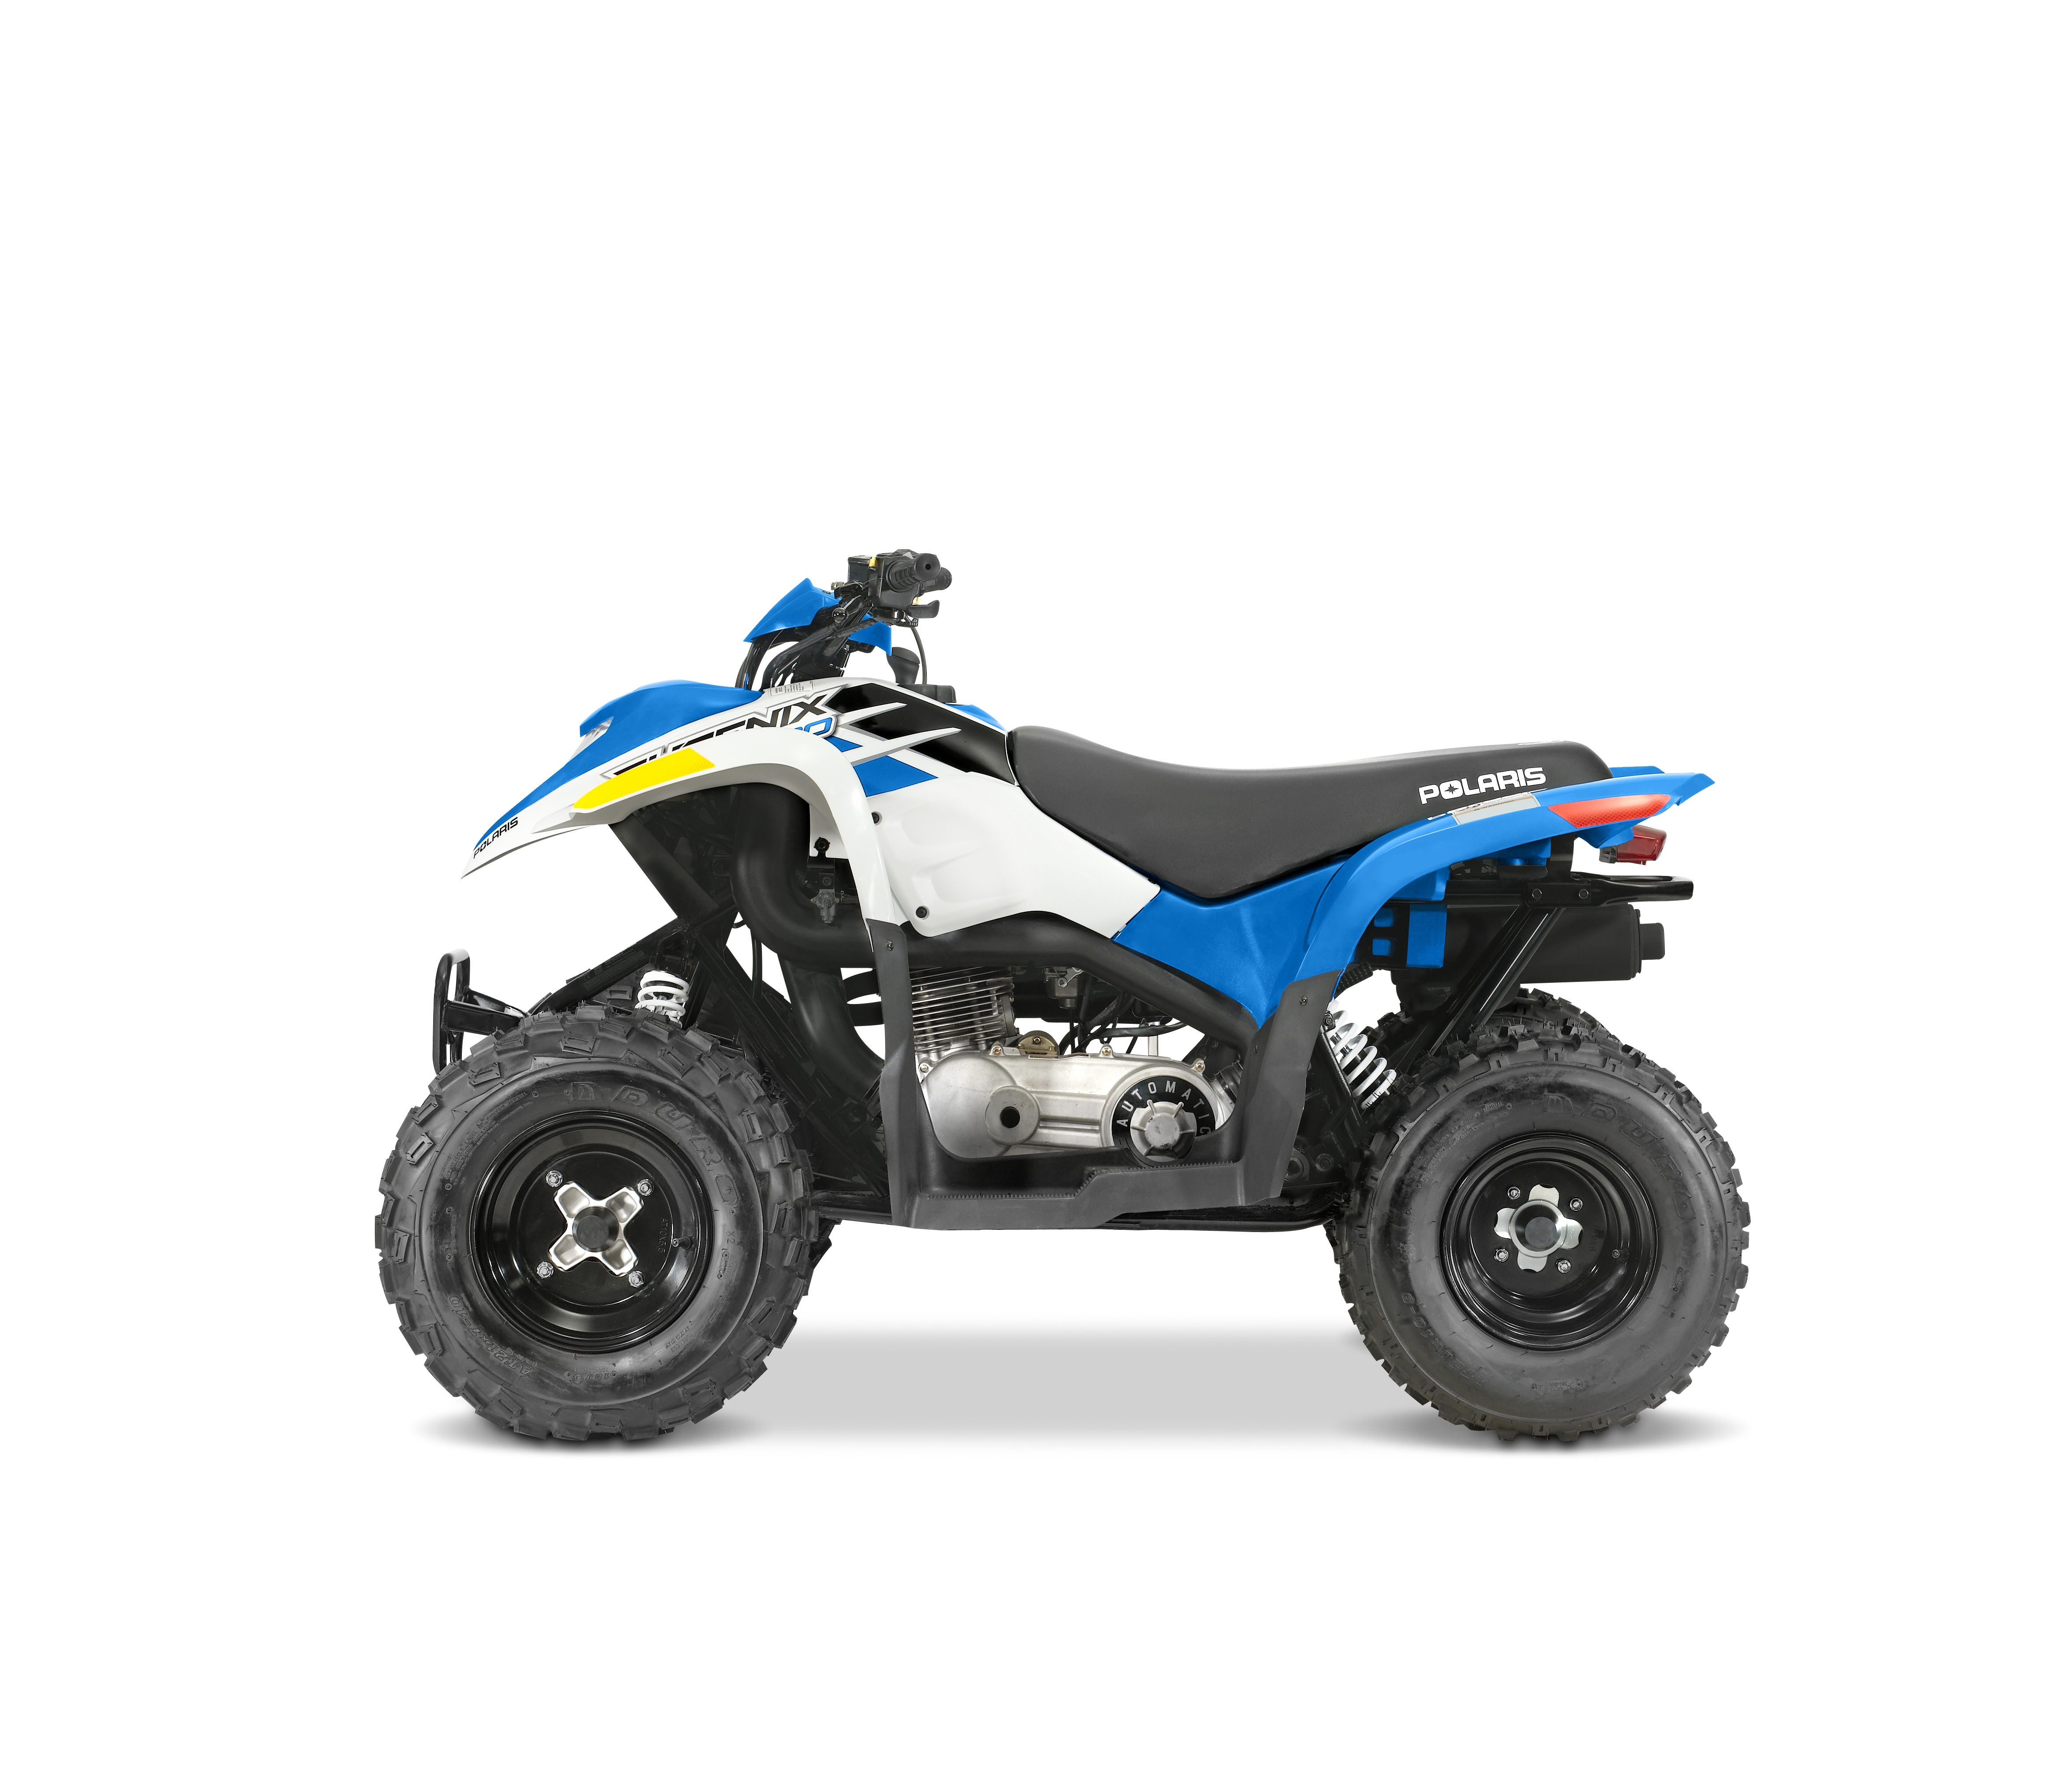 image of Polaris Phoenix 200 all-terrain vehicles (ATVs)